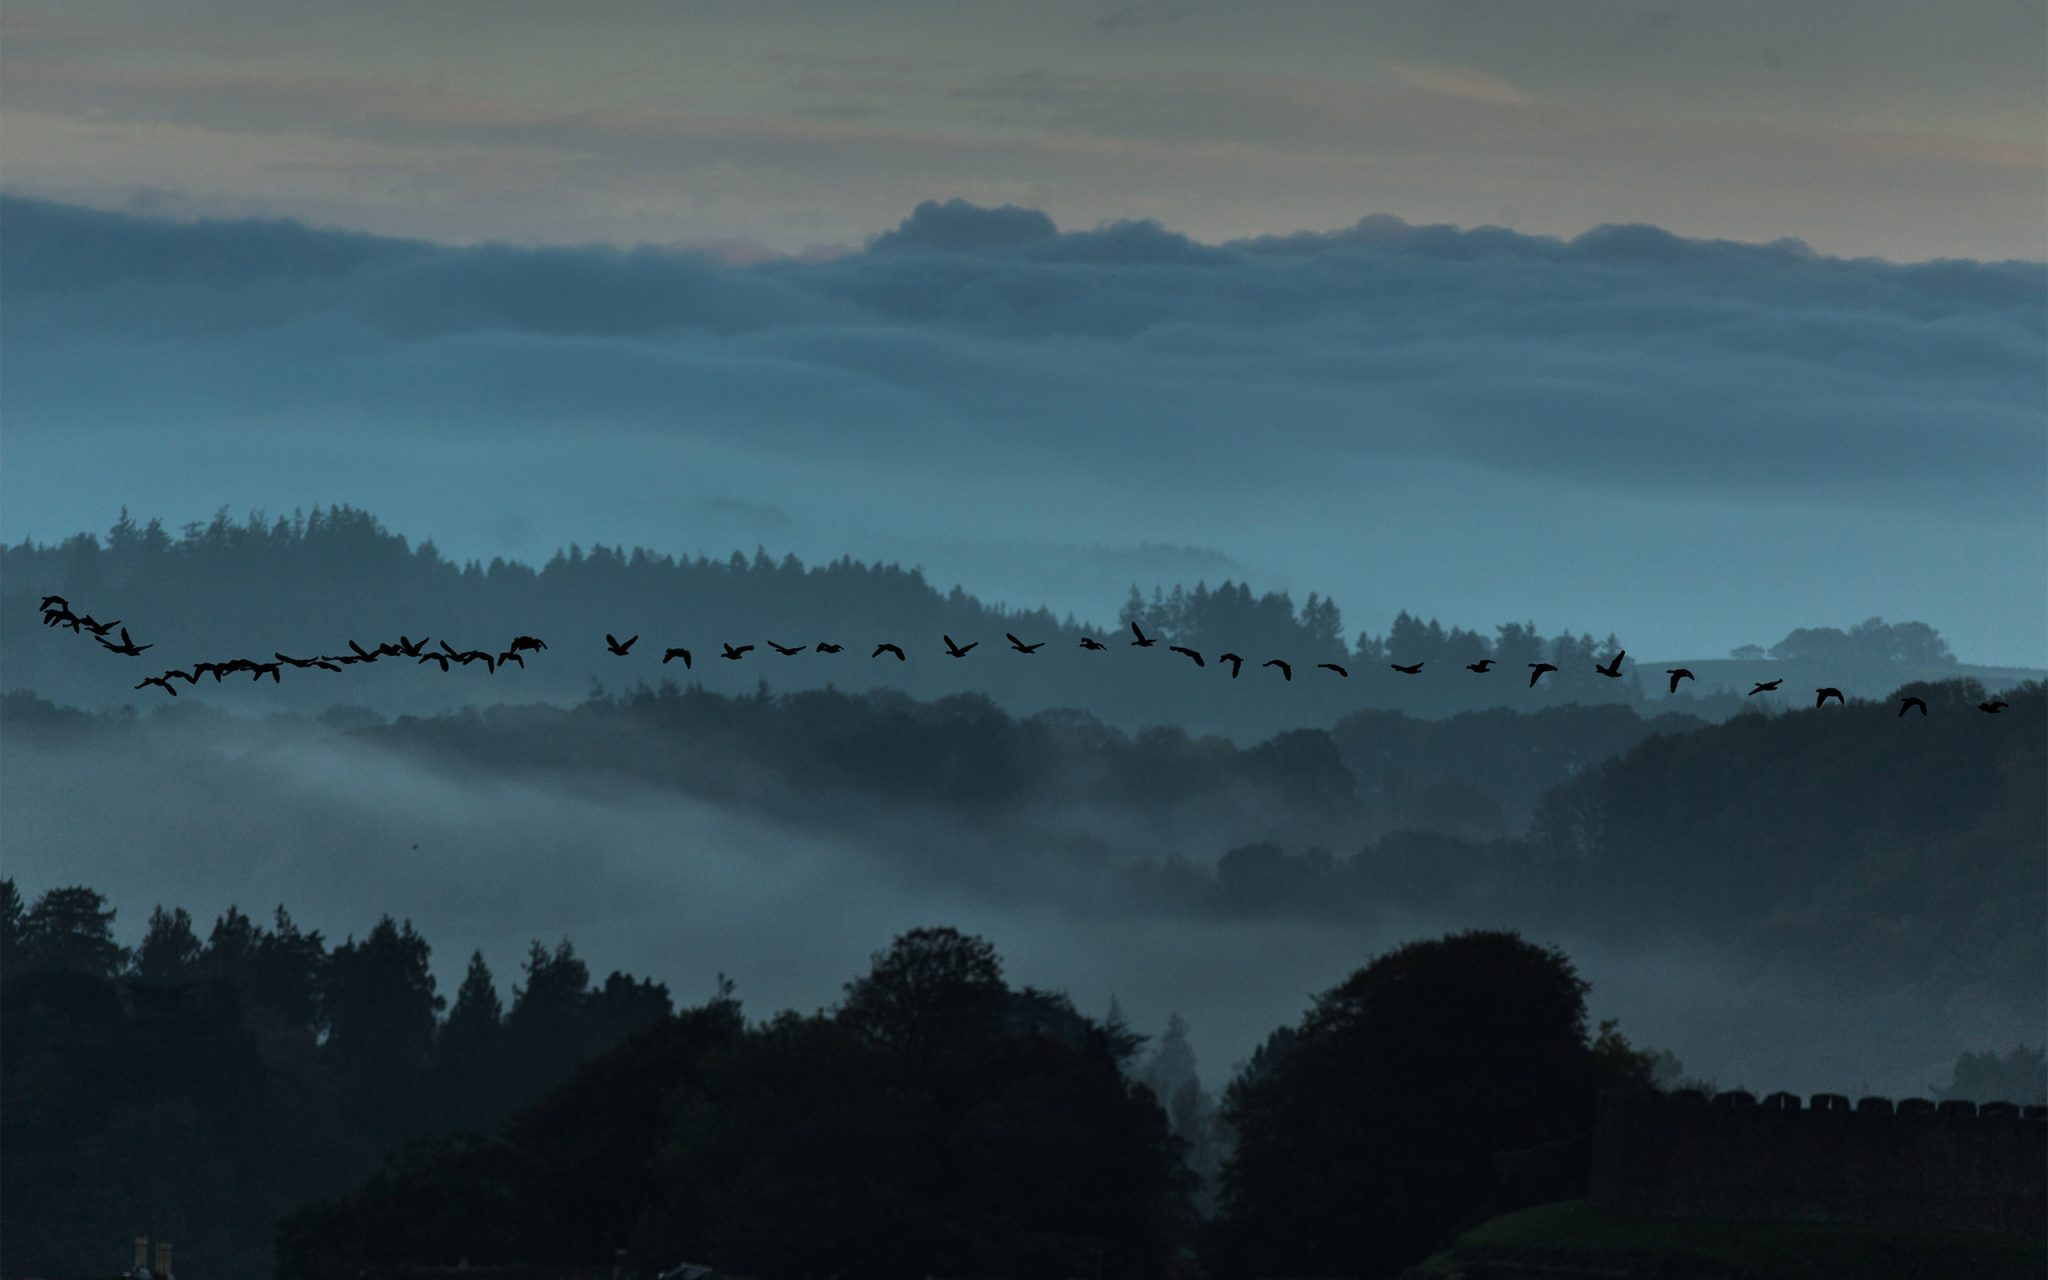 Geese arriving in our town (Totnes, Devon) in the UK from the Arctic tundra this morning. Carey Marls photography